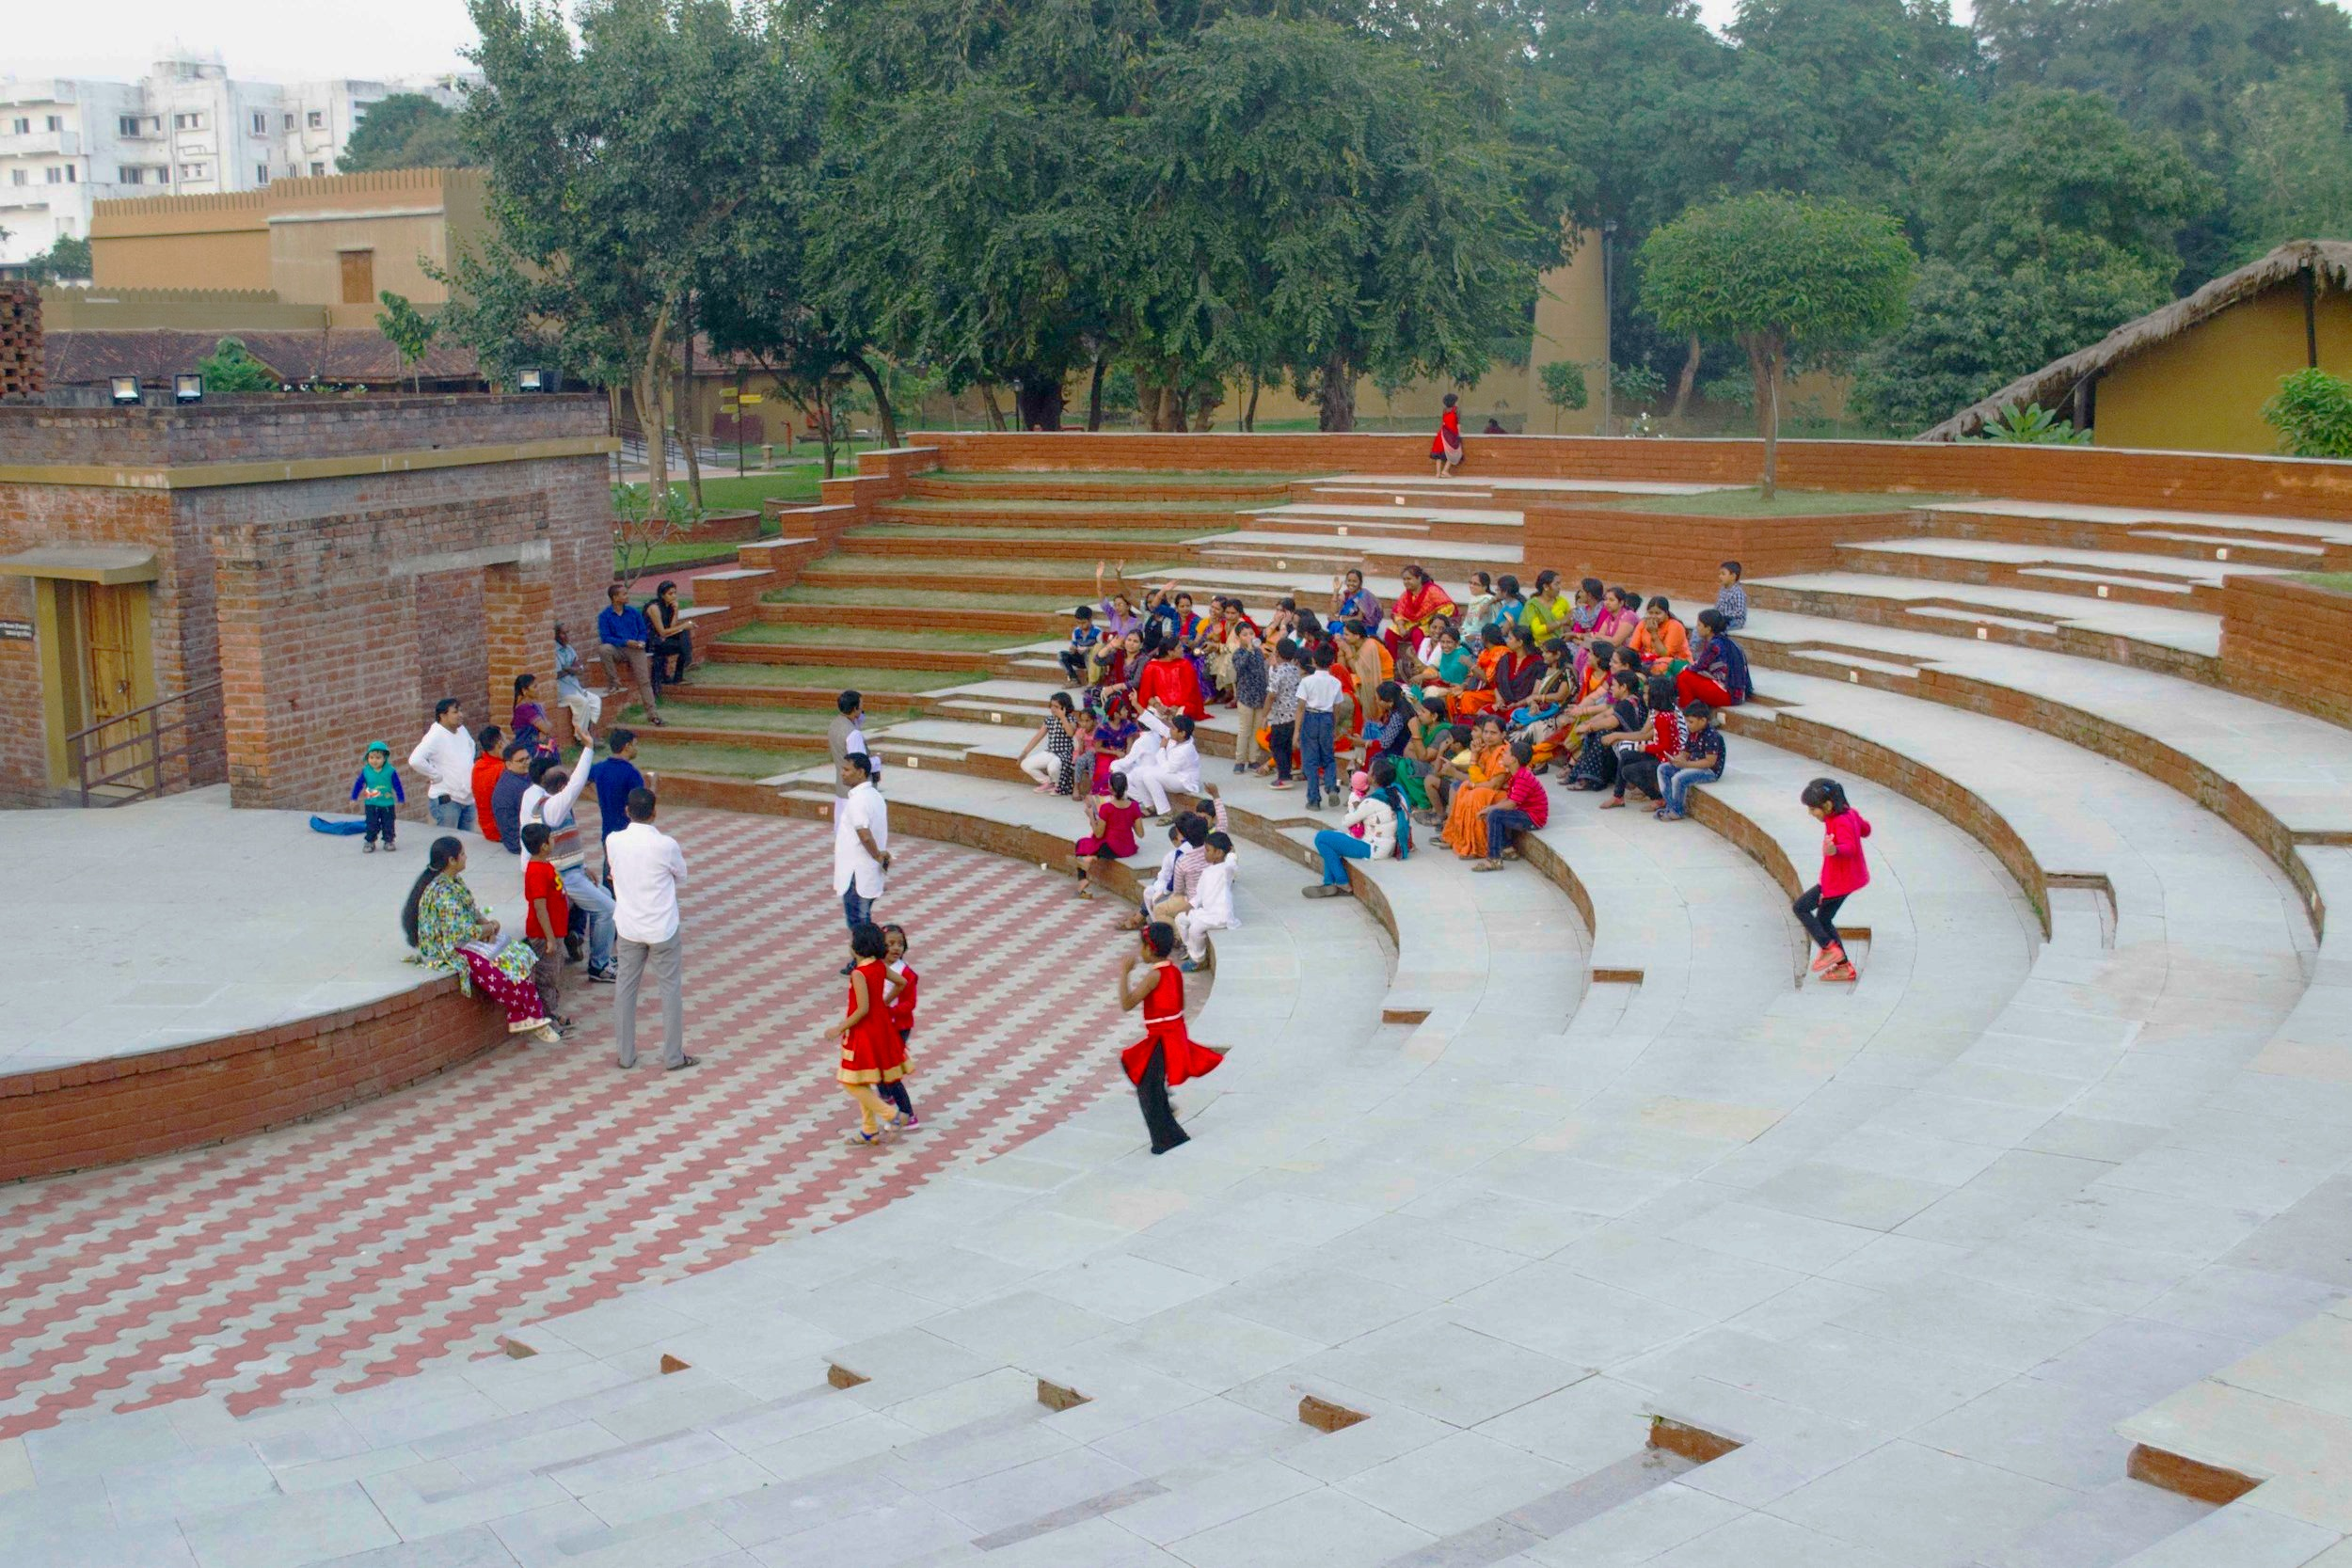 Amphitheatre in axis with the ceremonial road